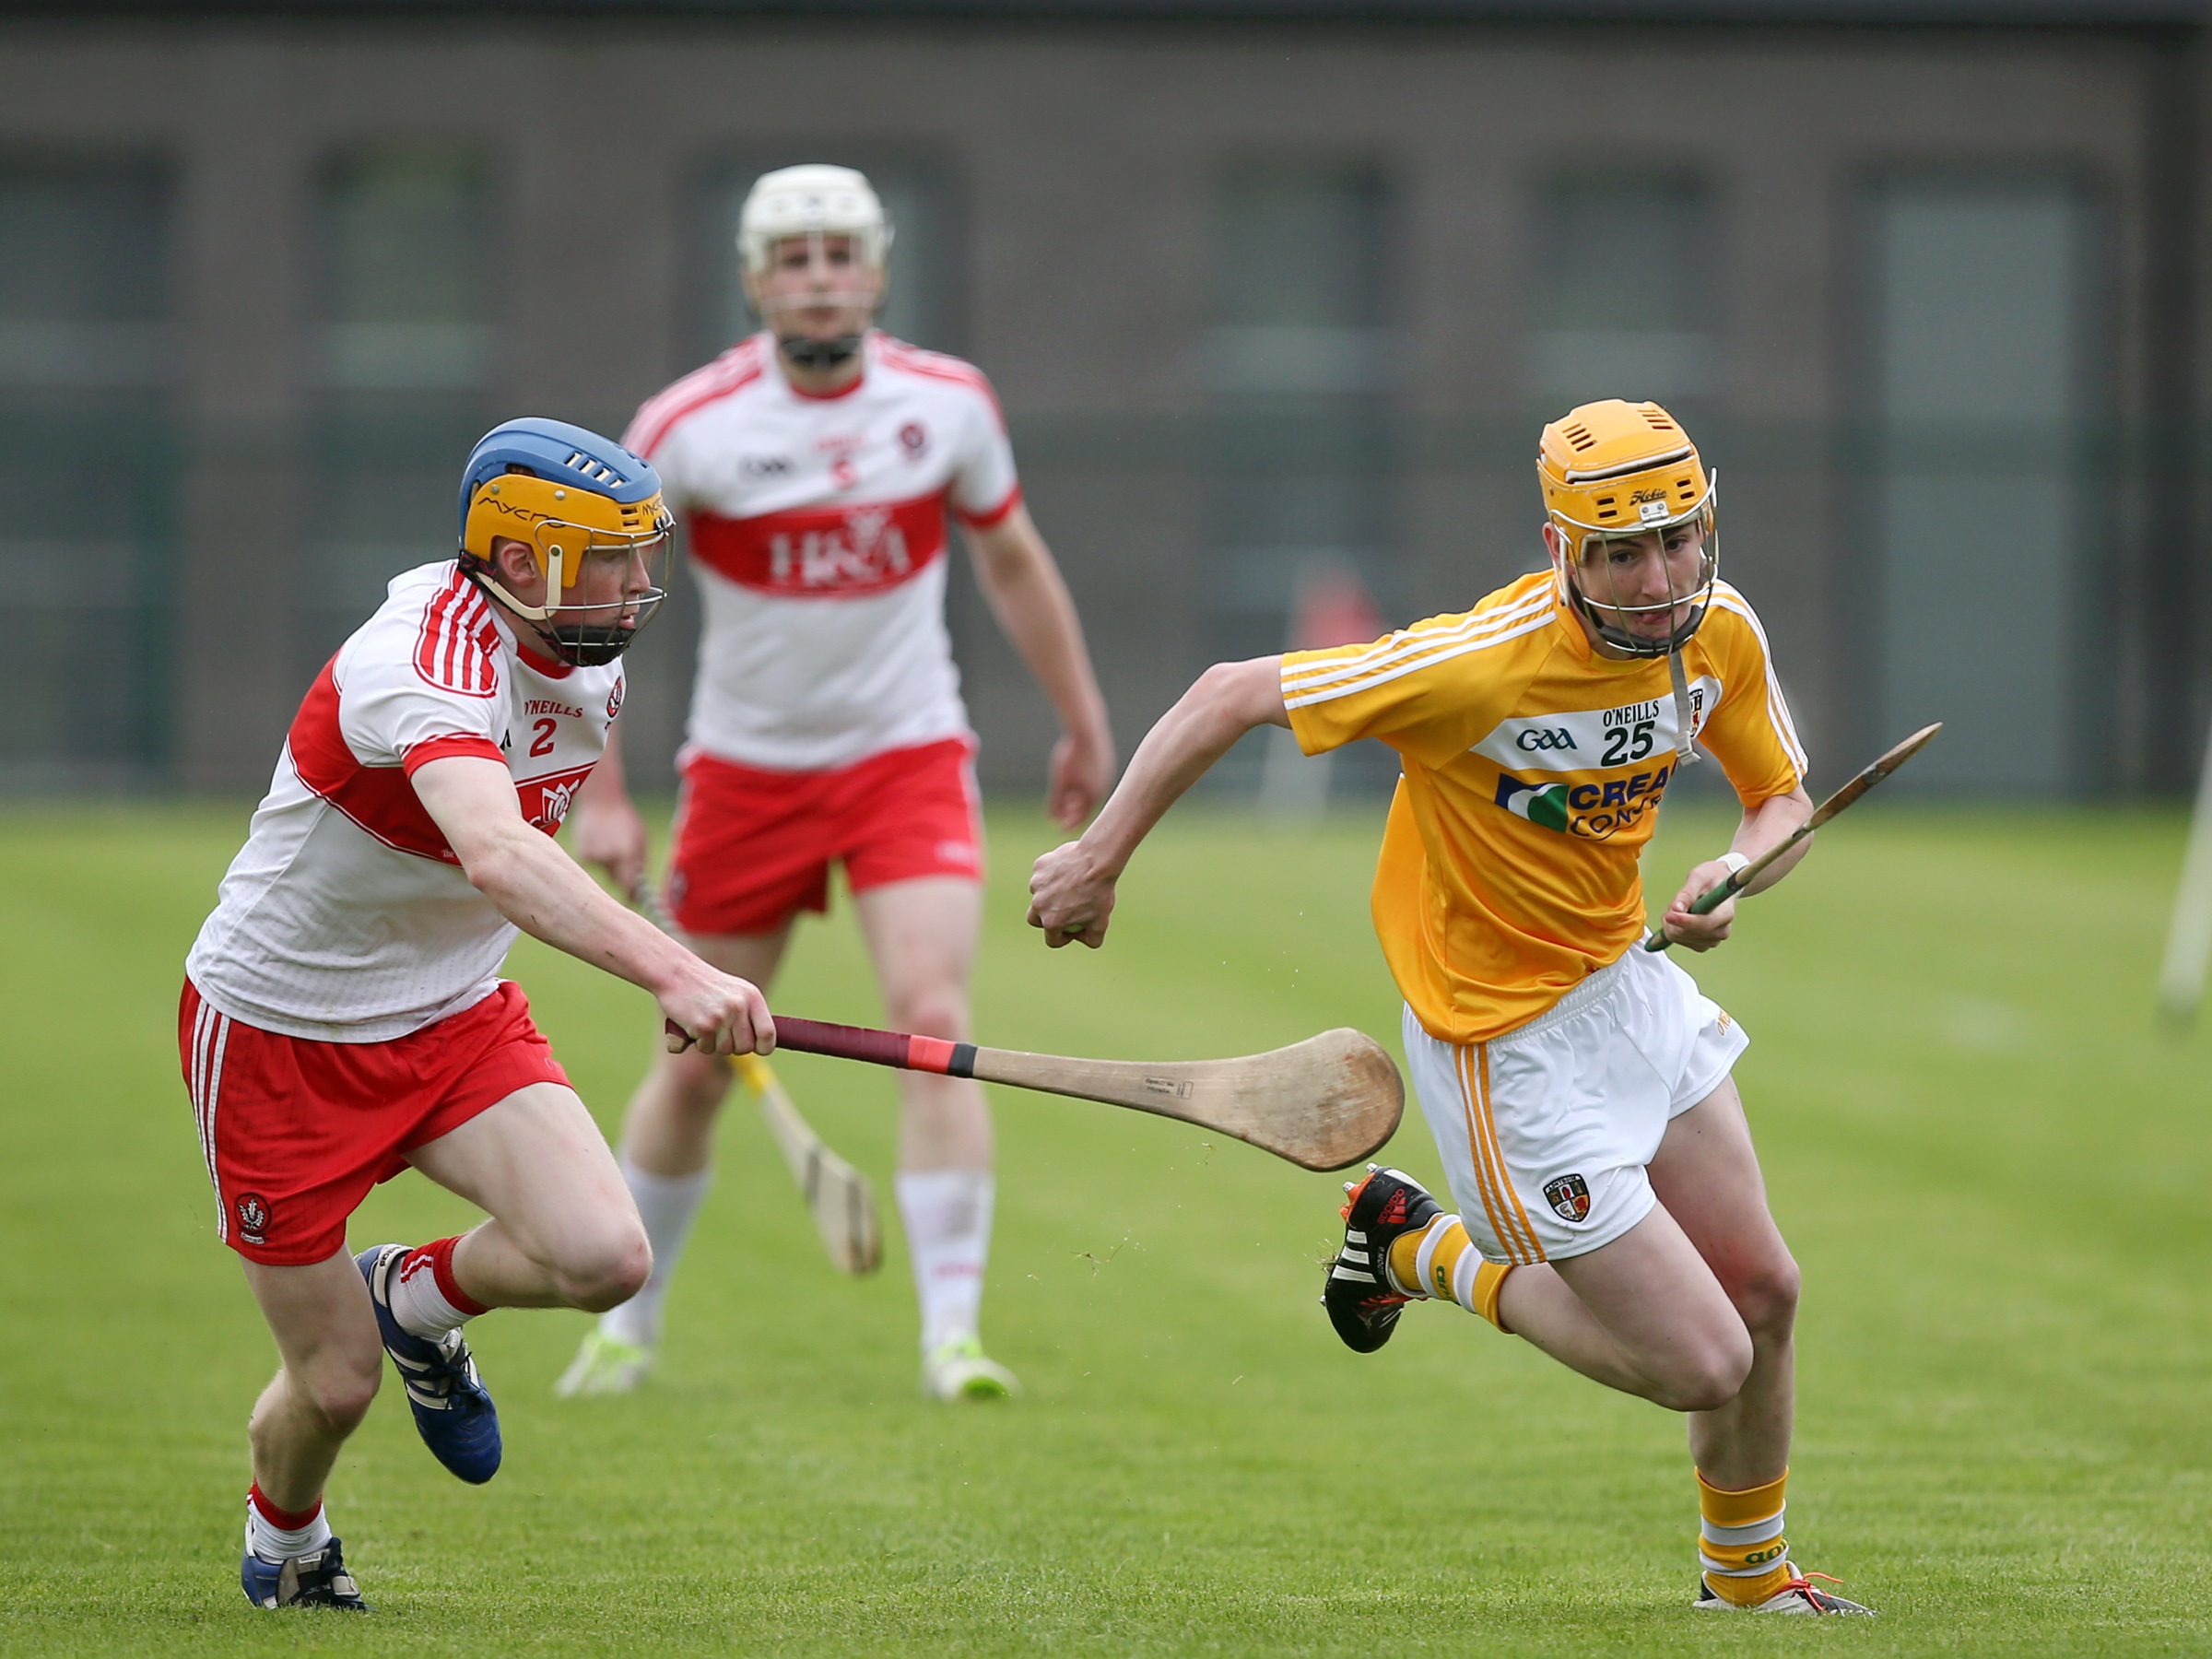 Peter McCallin tries to break away from the challenge of Derry\'s Ruairi McWilliams during Sunday's game at Owenbeg